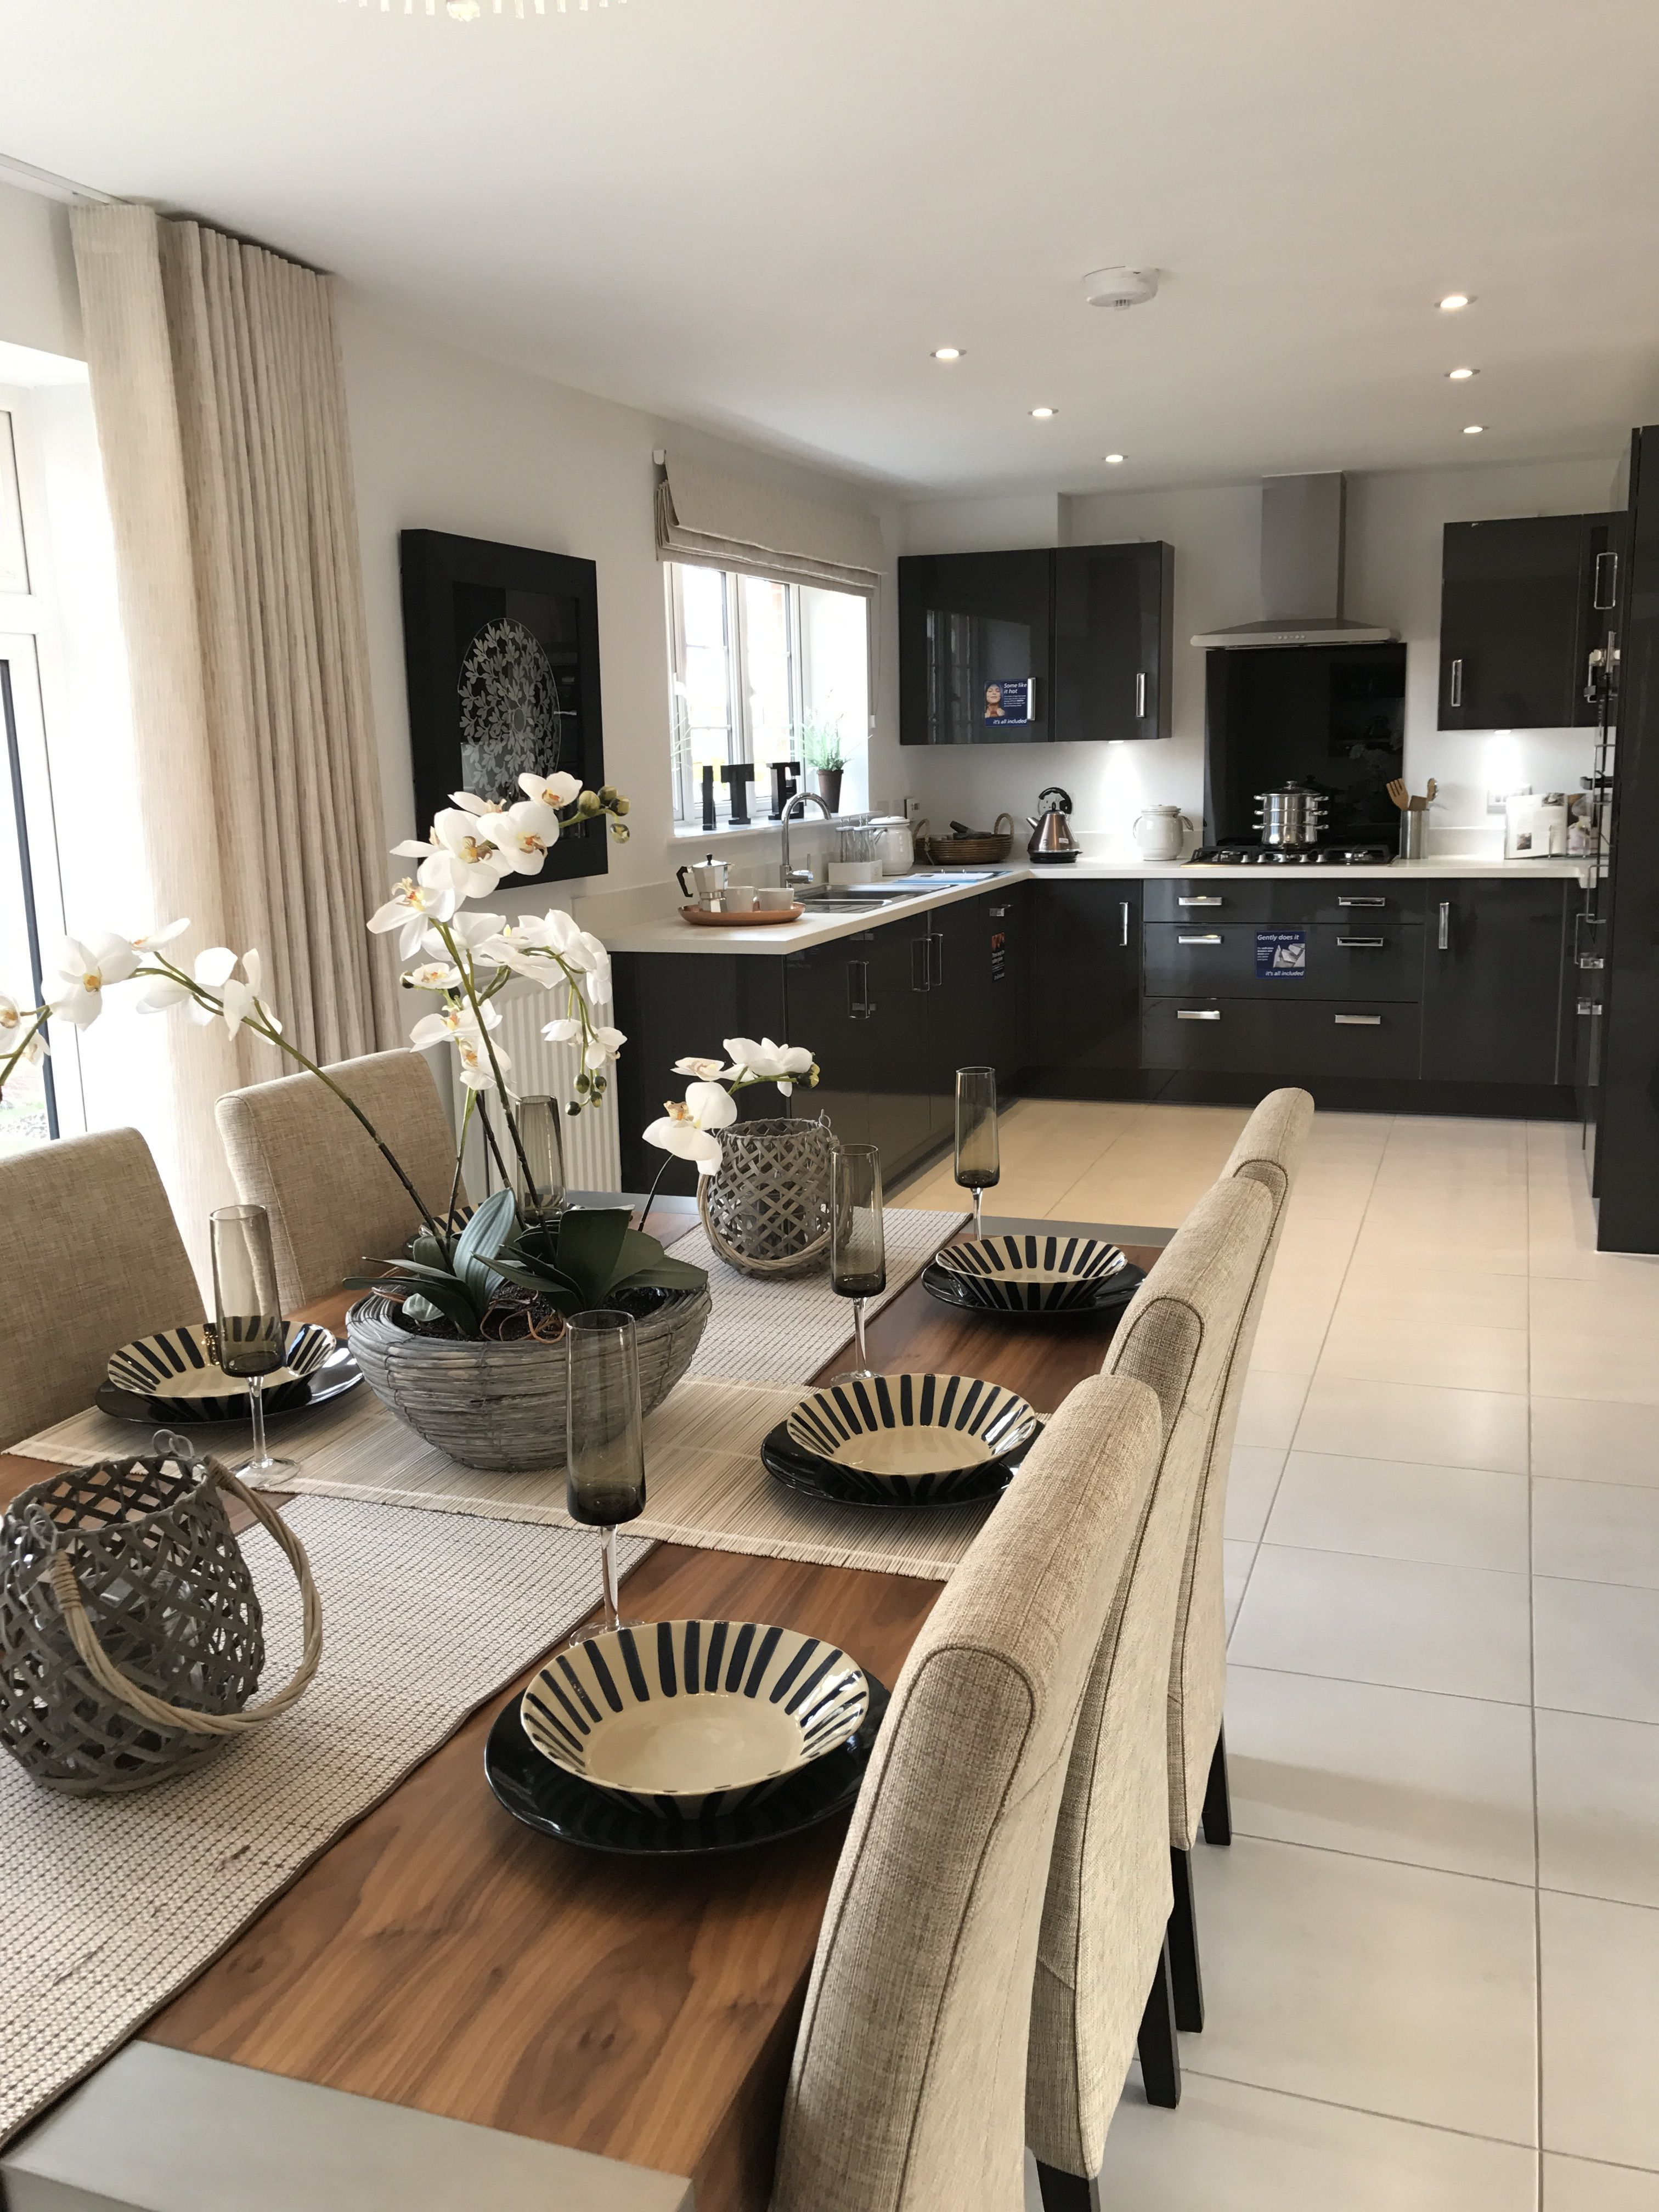 Modern kitchen, dining table, plates, flowers, new home   Open ...